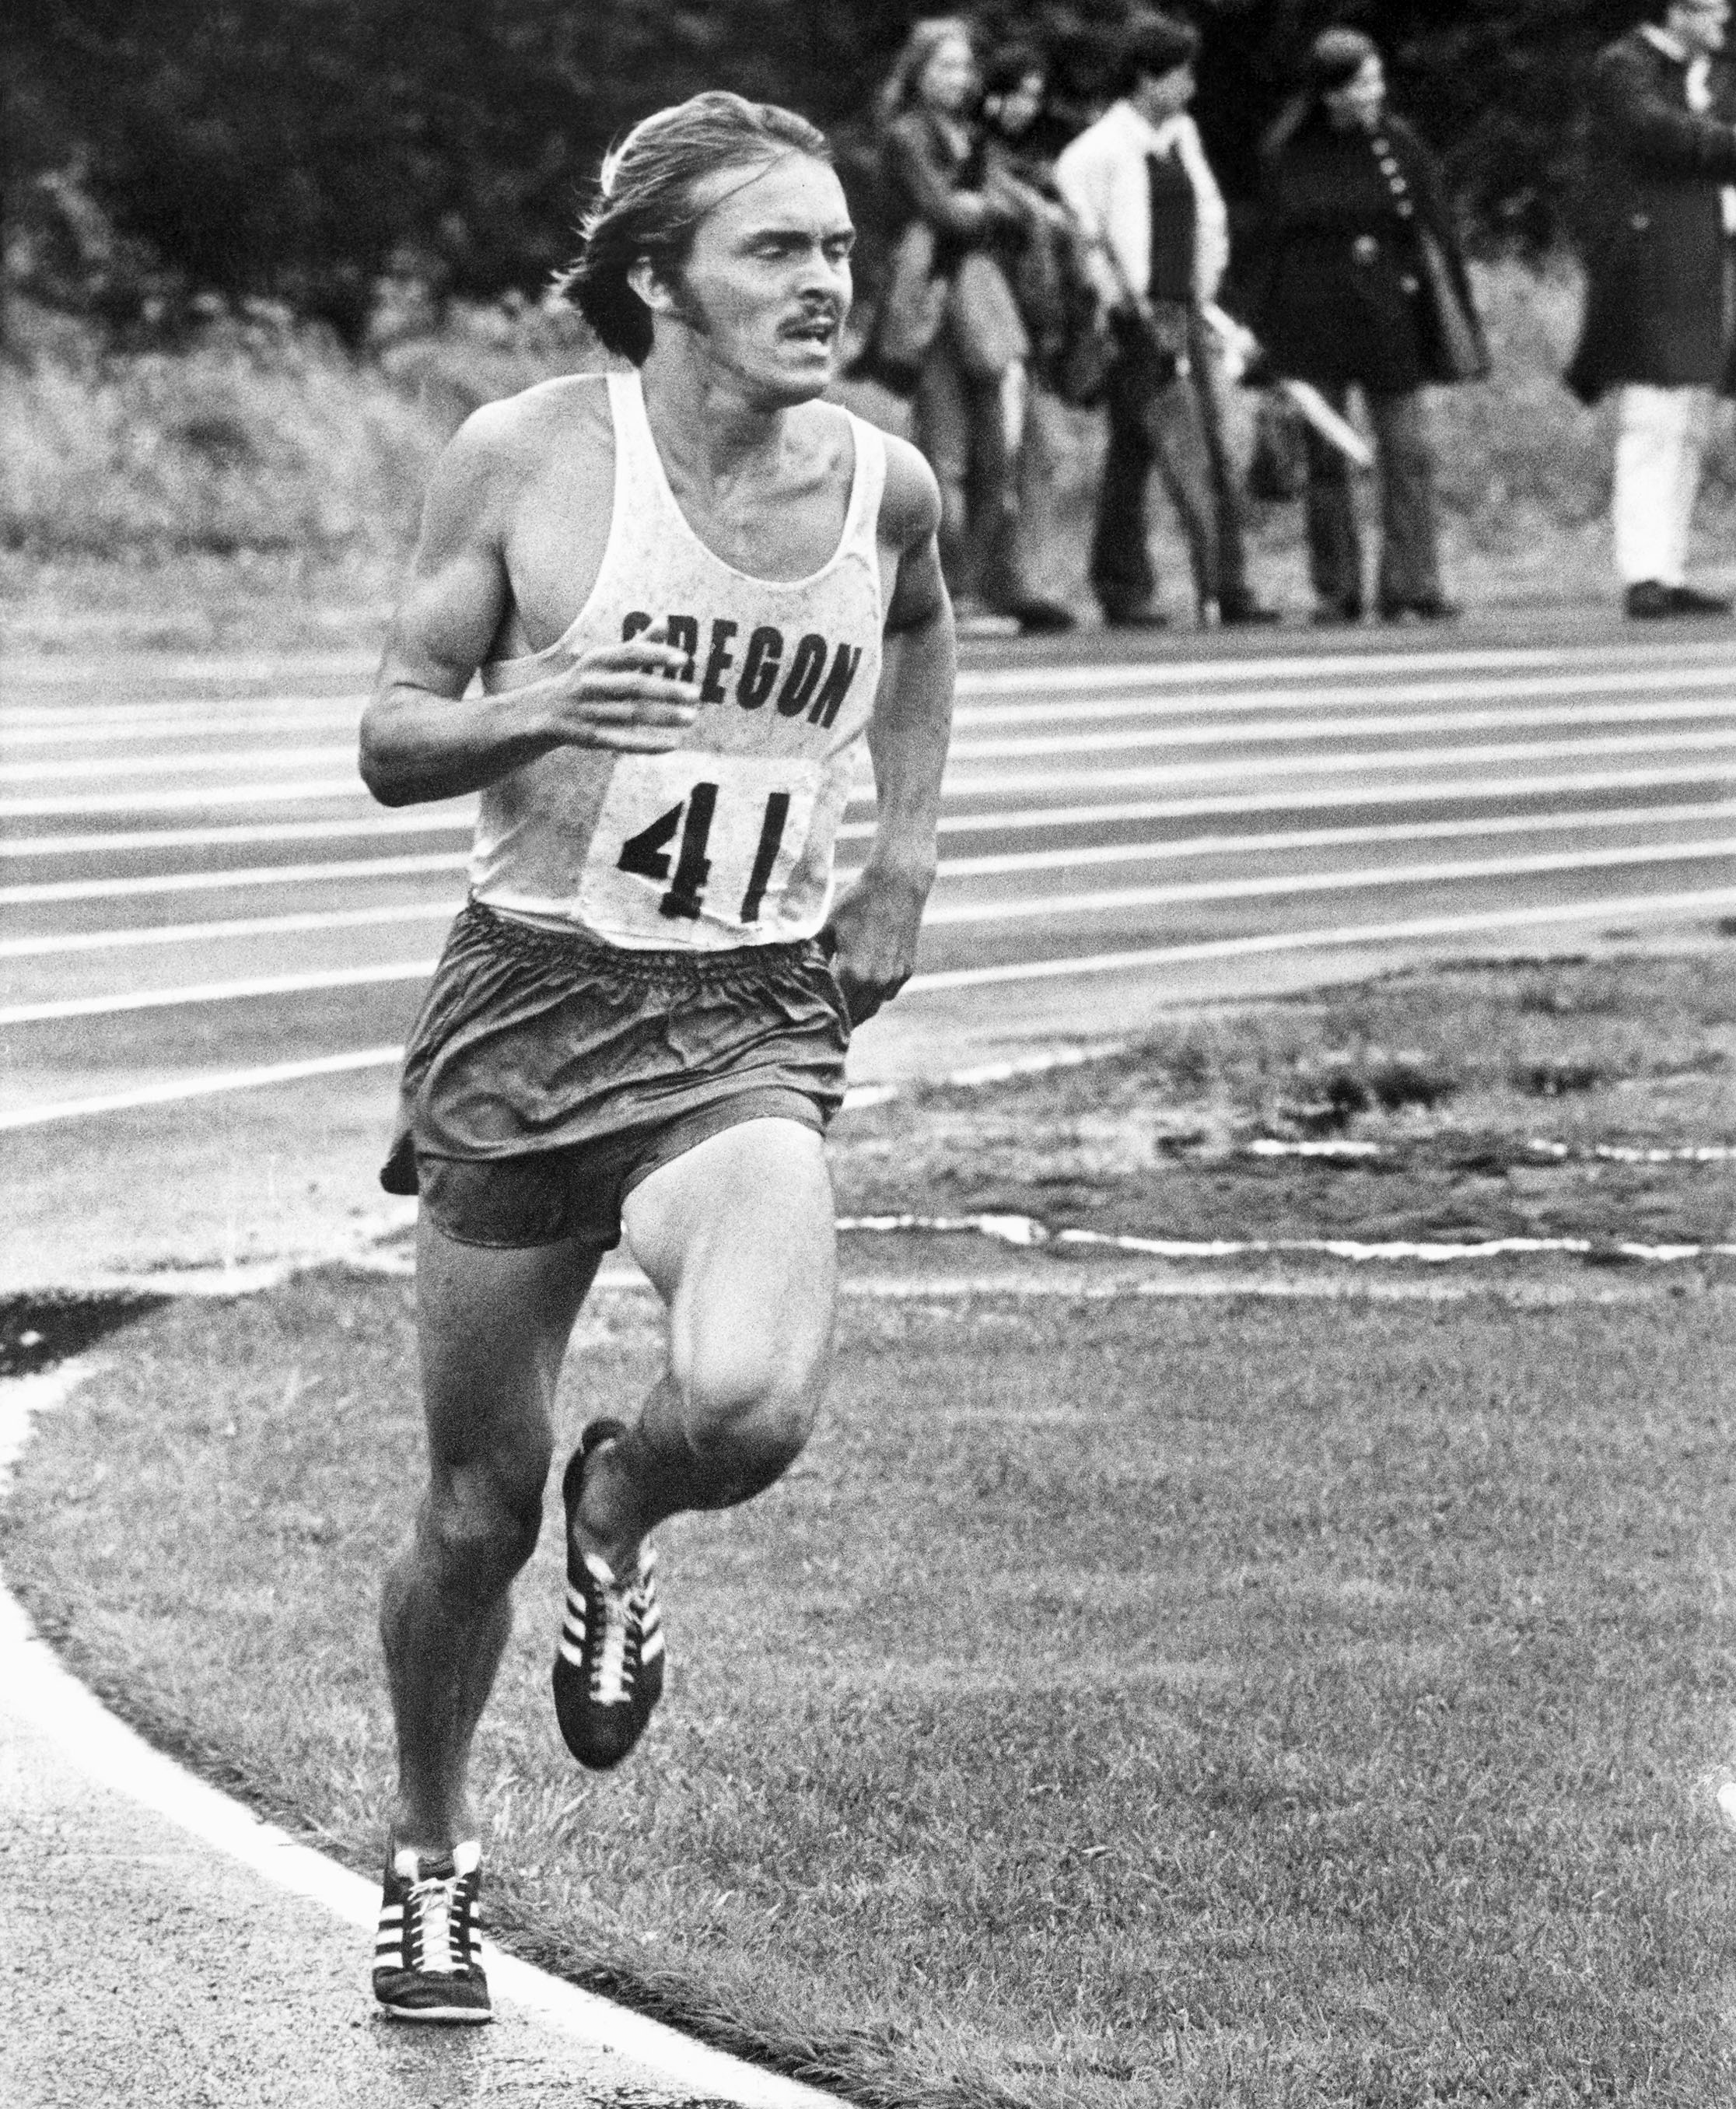 Steve Prefontaine of Oregon set a U.S. record in the 3,000-meter race on Saturday, June 26, 1972 in the Rose Festival Track Meet at Gresham, Oregon. His time was 7 minutes, 45.8 seconds. Profontaine will run 5,000 meters in the U.S. Olympic Trials which get underway on Thursday in Eugene. (AP Photo/Clark)